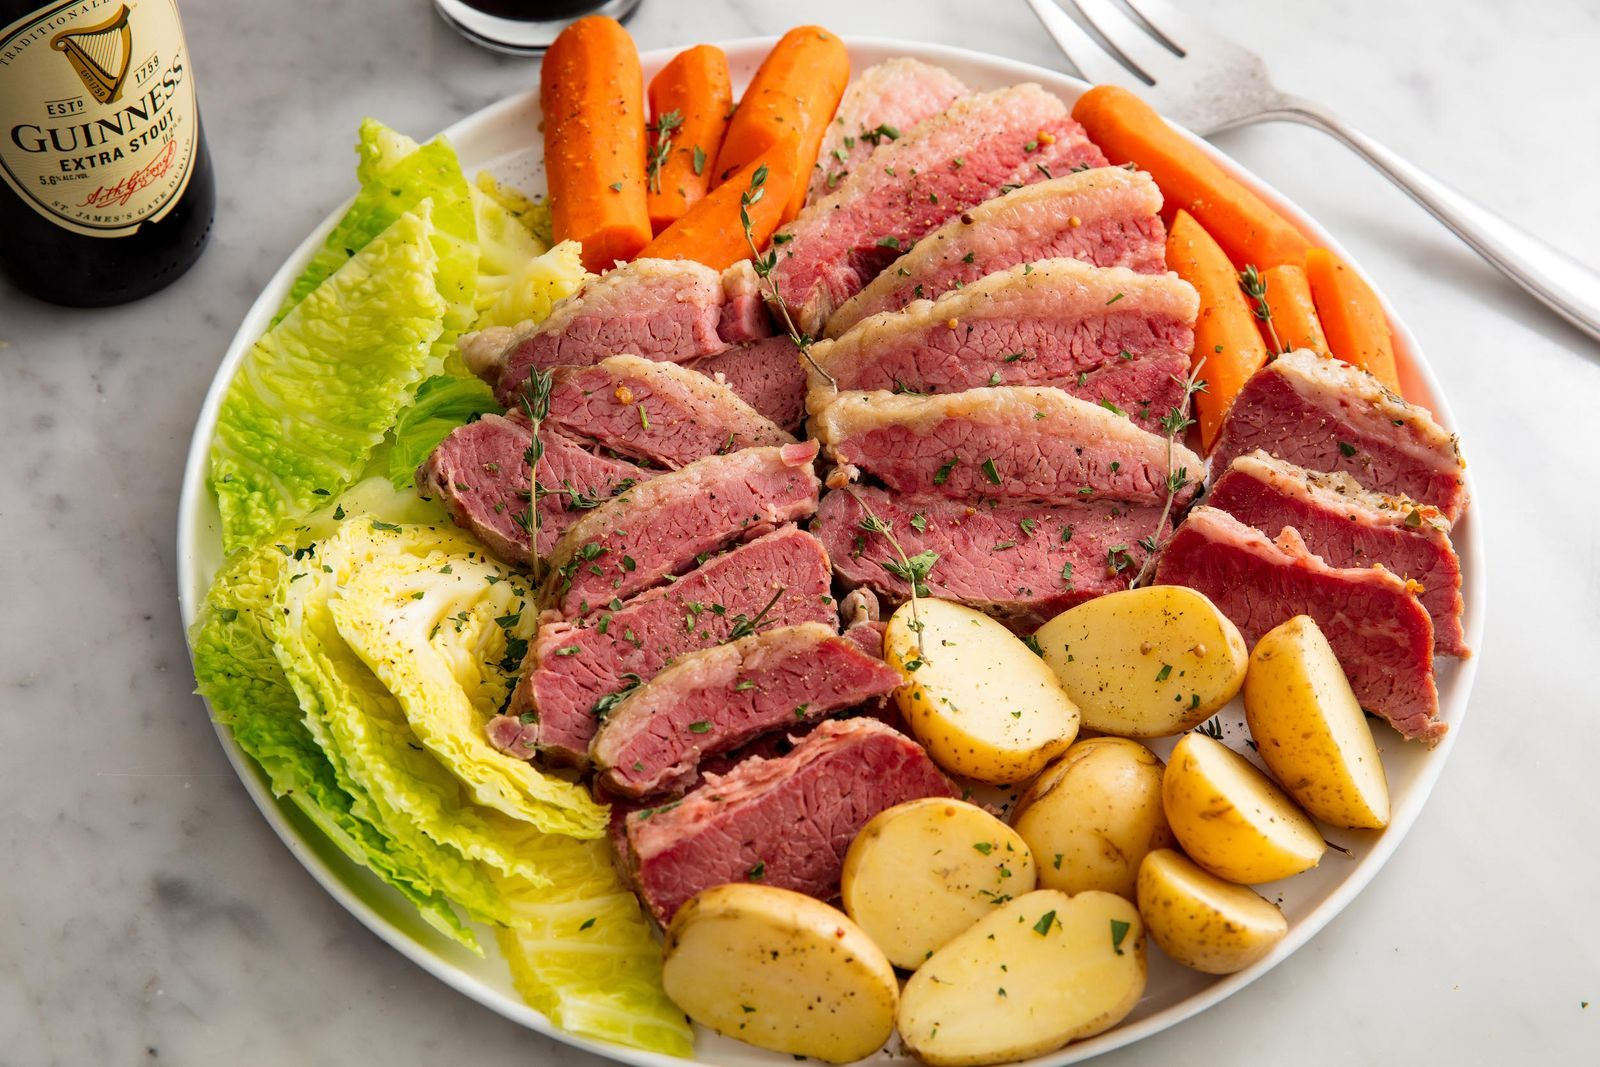 Slow Cooker Corned Beef Cabbage Is Crazy Tender Recipe In 2020 Slow Cooker Corned Beef Cabbage Recipes Corned Beef Recipes